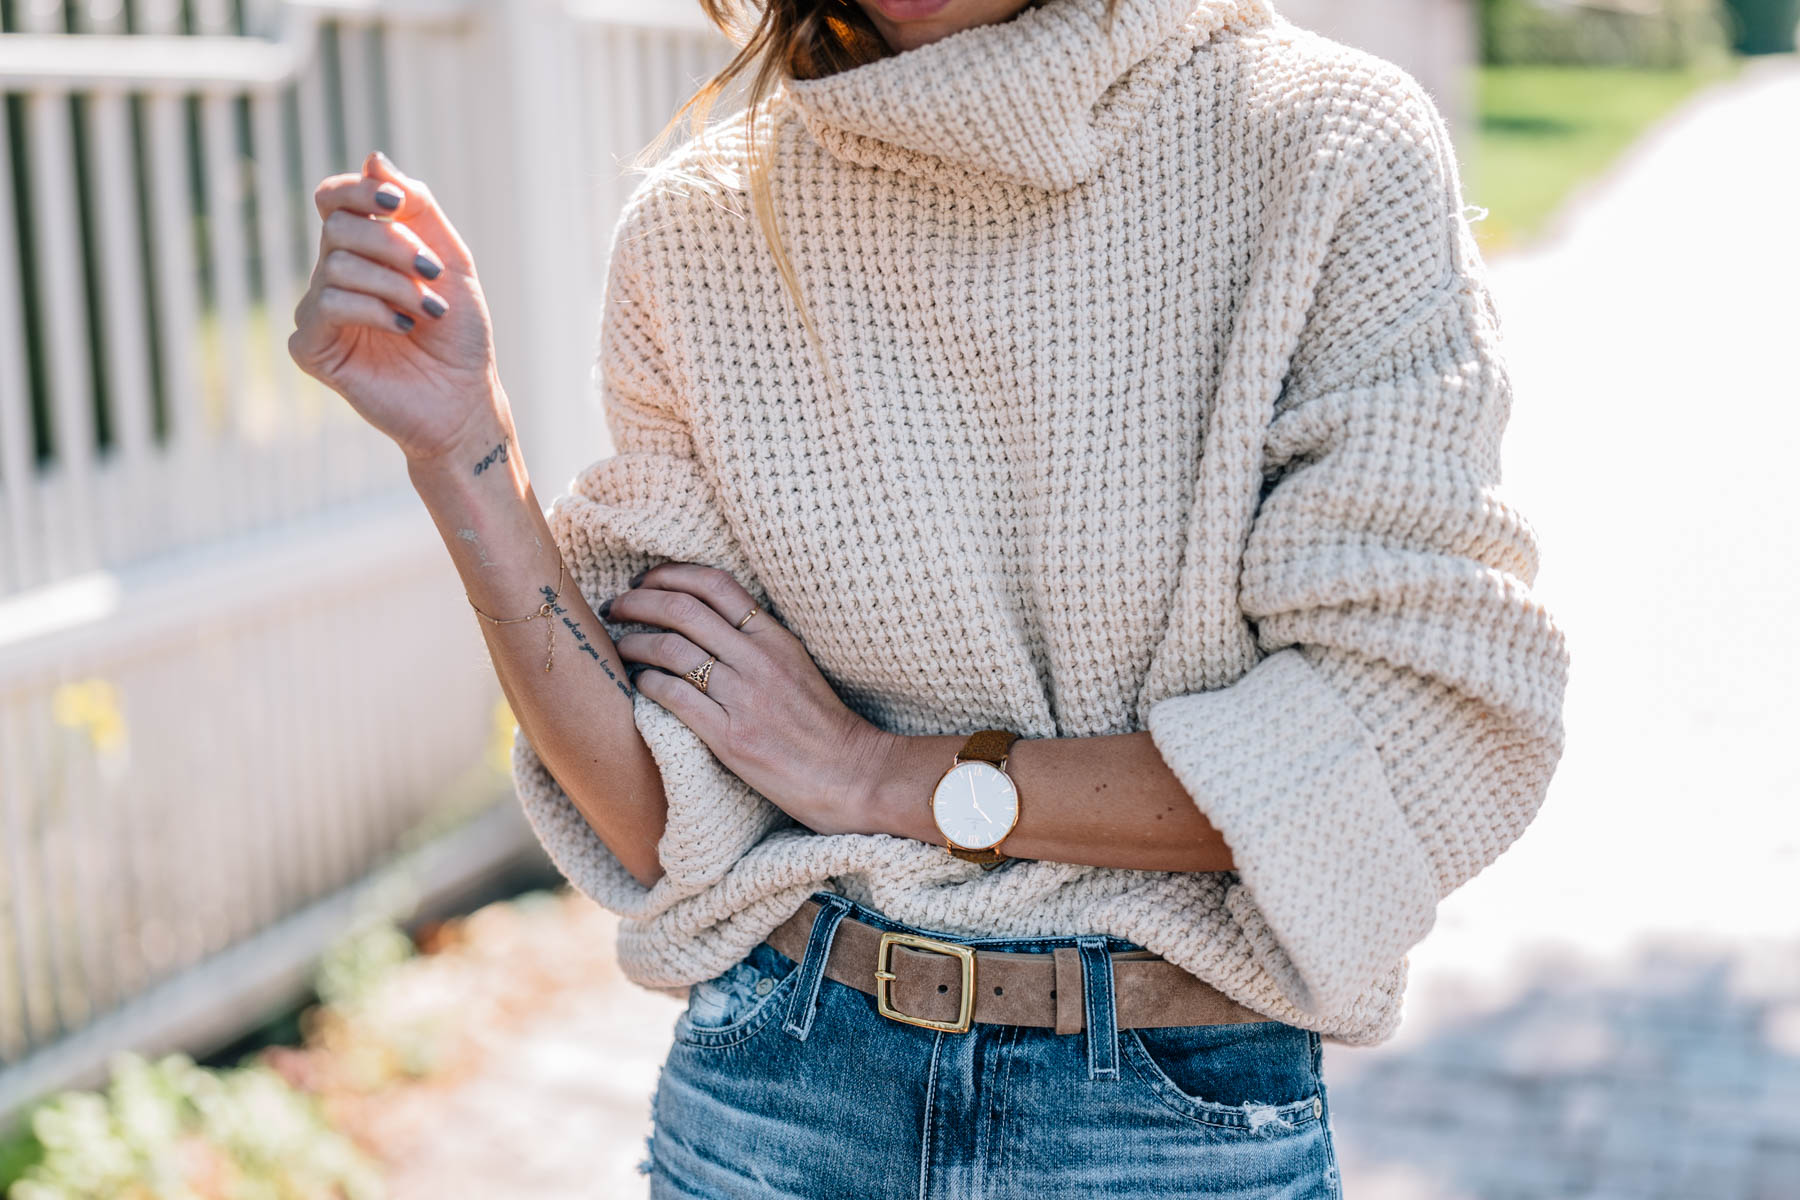 Jess Ann Kirby's fall style in a chunky knit turtleneck sweater with rag and bone leather belt